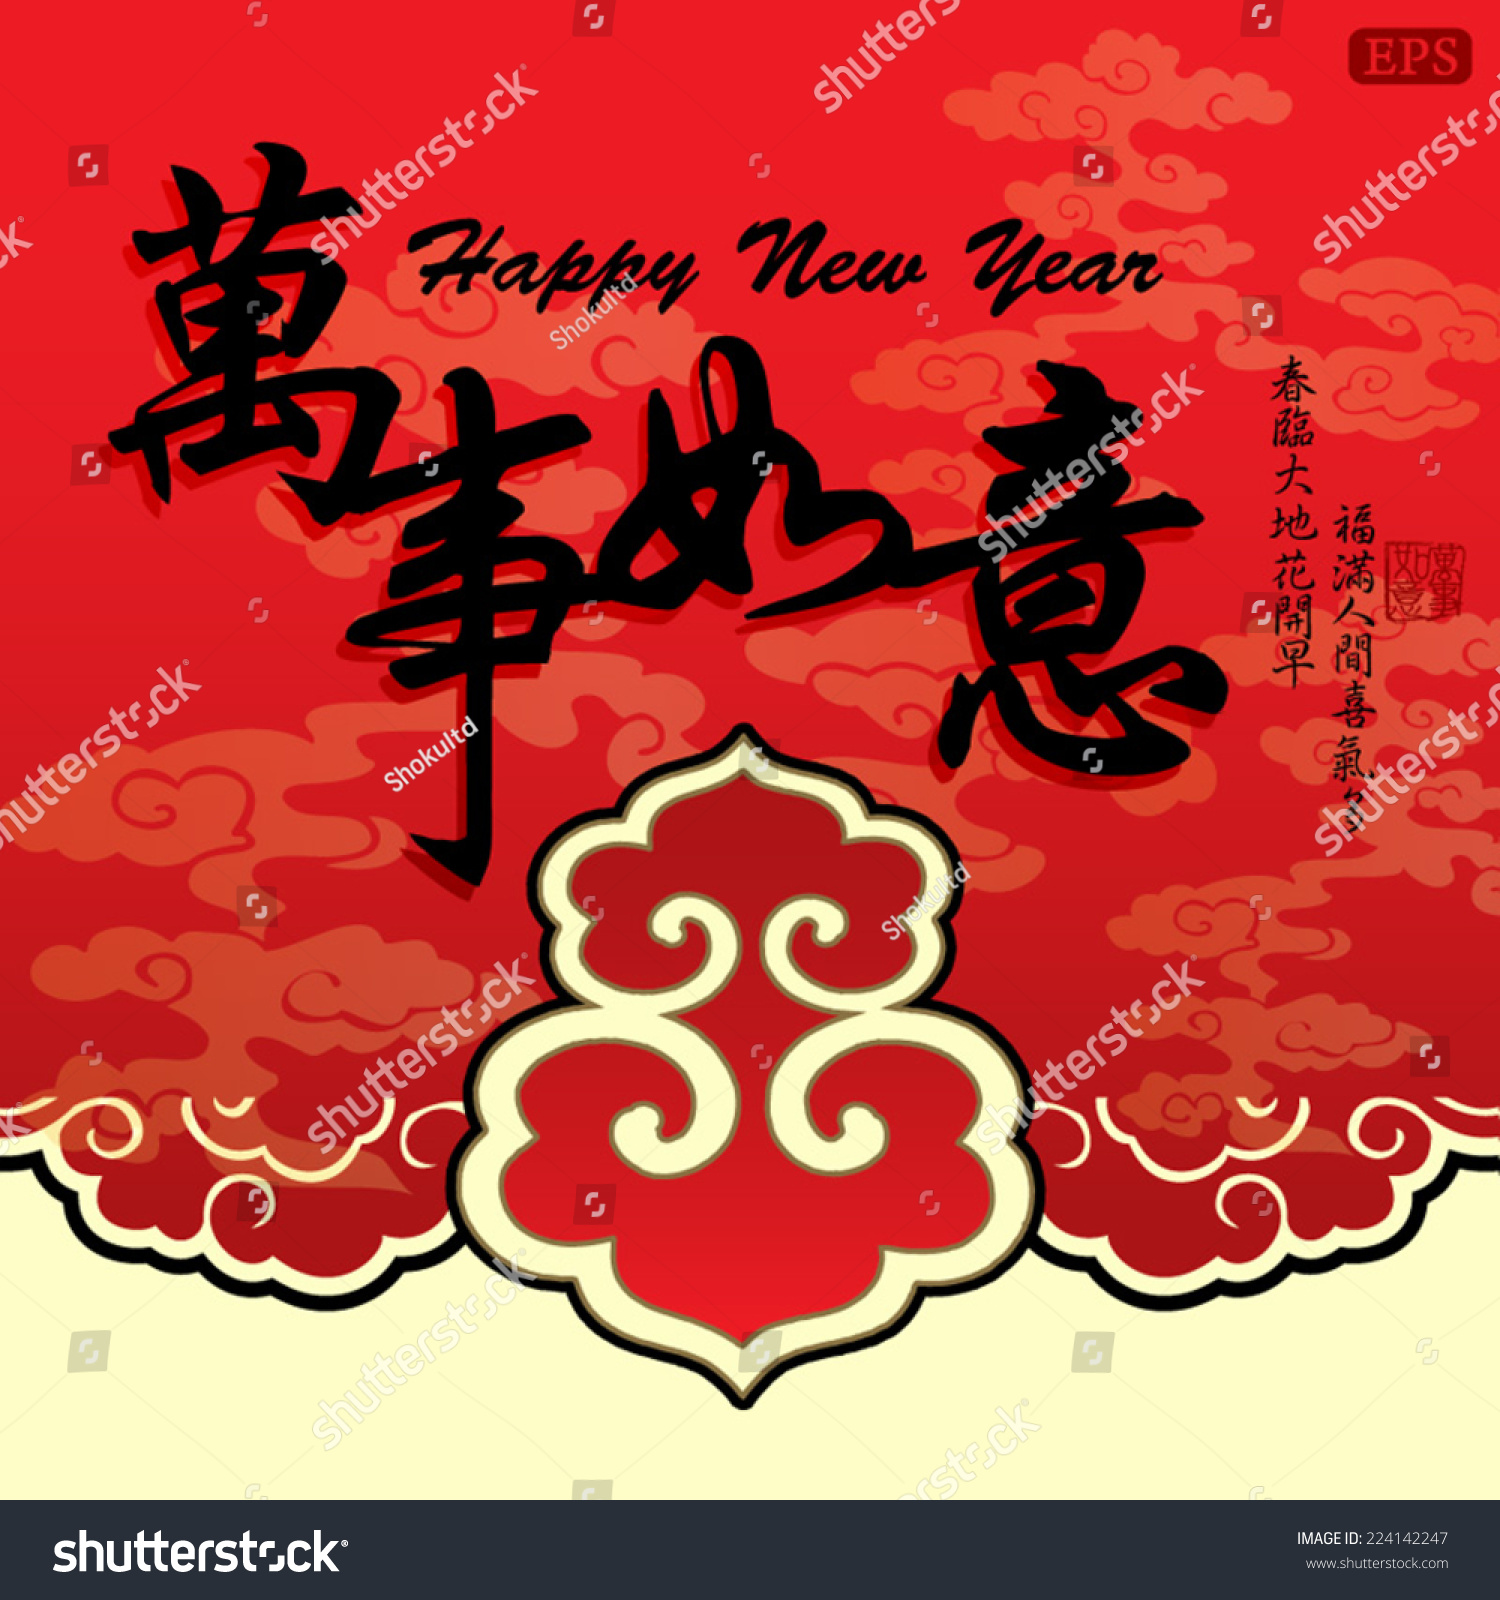 chinese new year greeting card designtranslation all the best translation of small